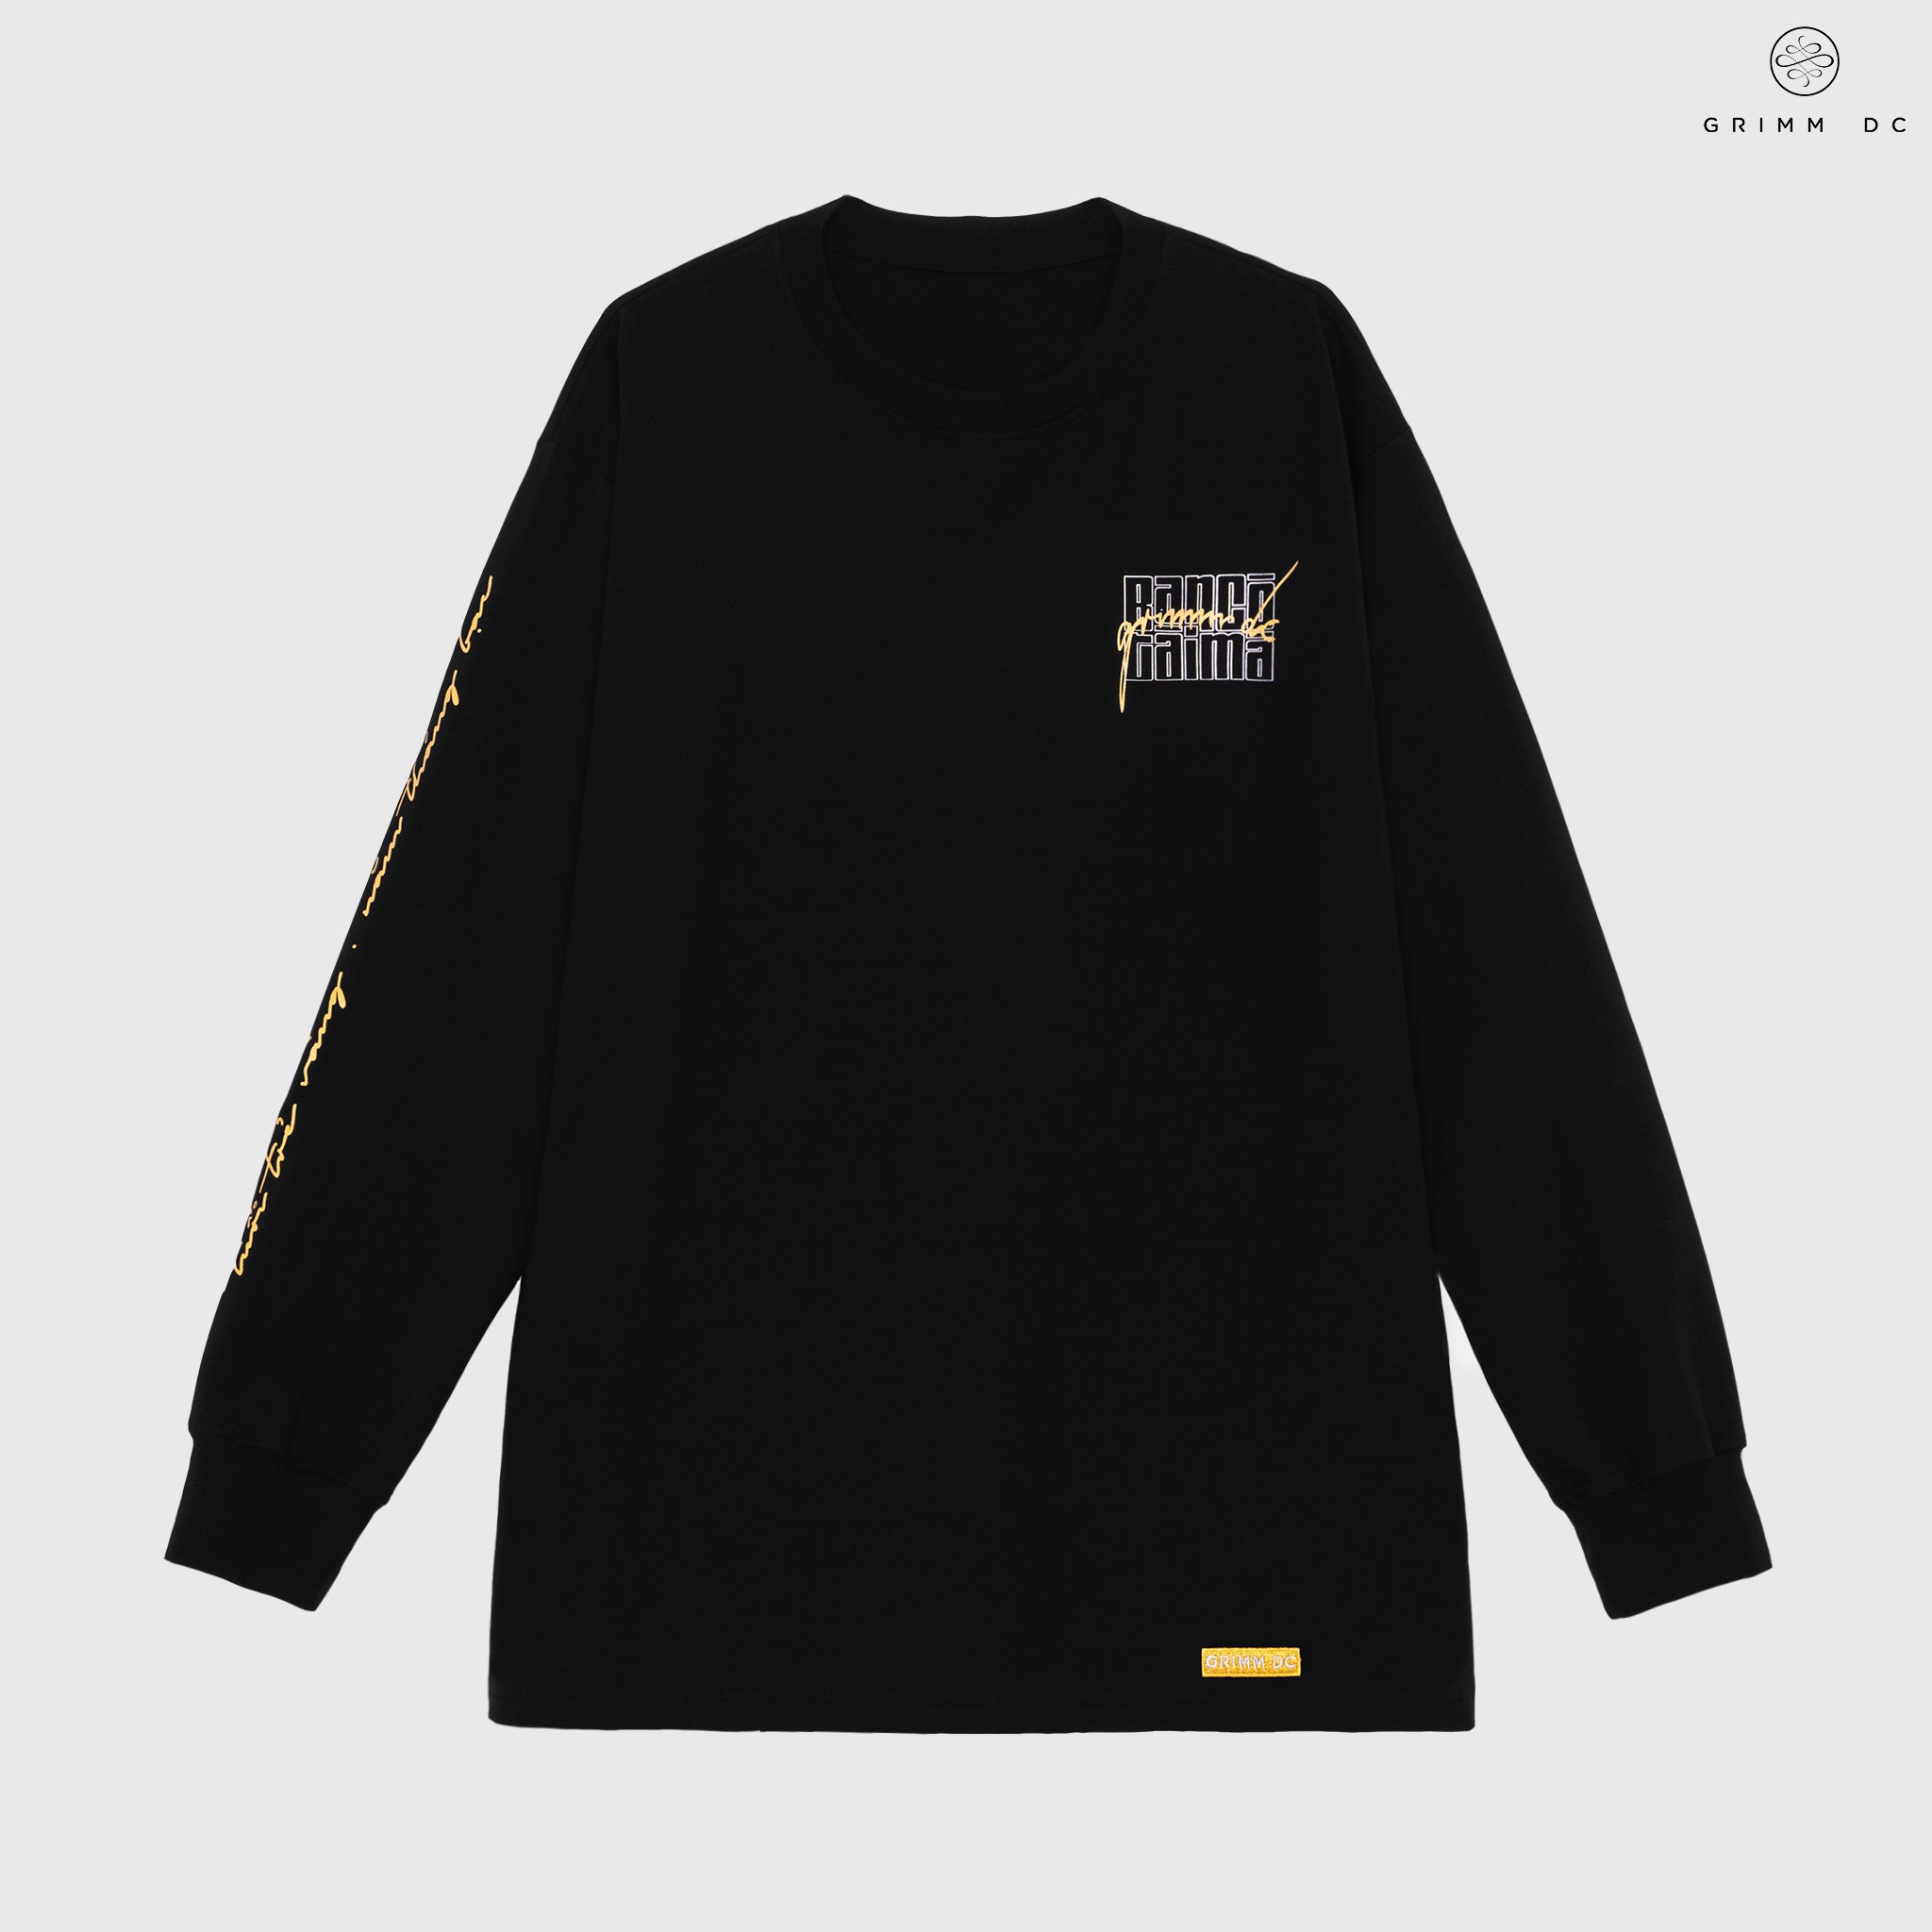 Long sleeve SCHDTX - Black